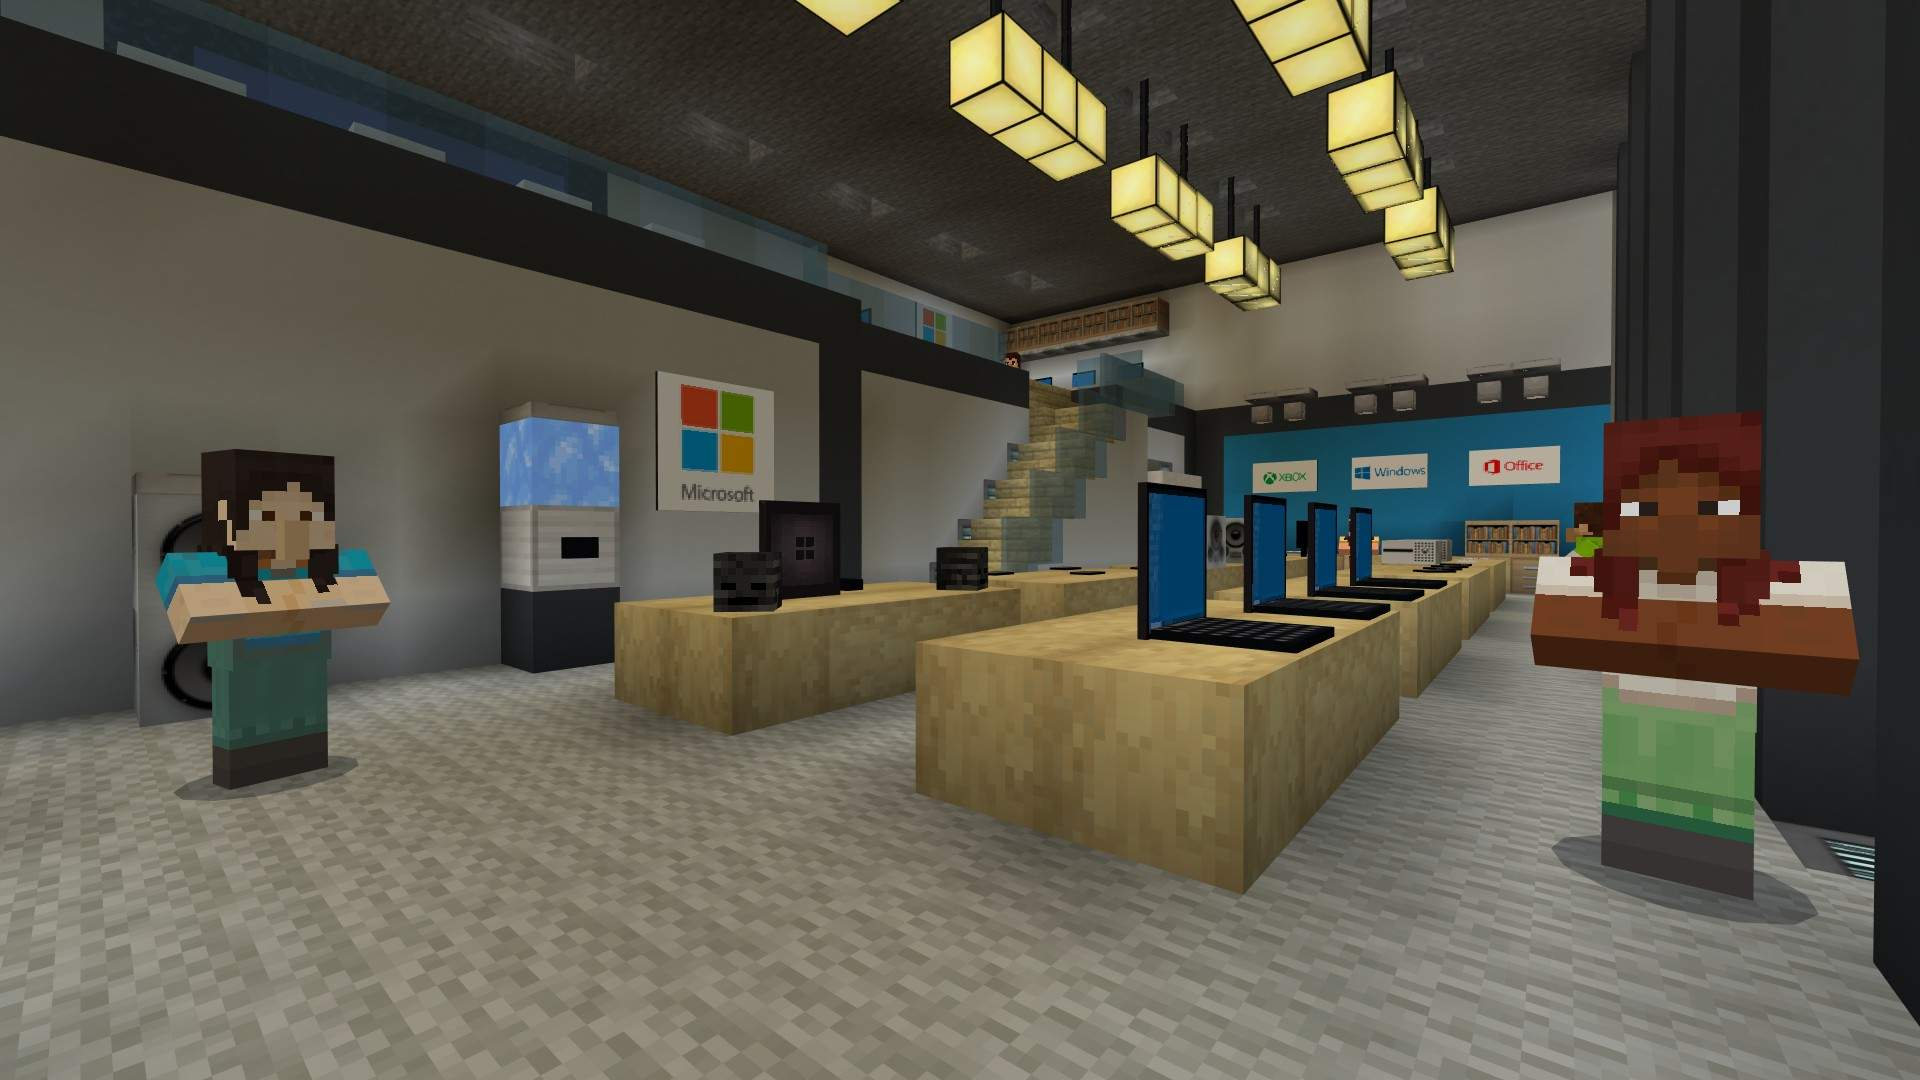 Two female NPCs face viewer to welcome them to Minecraft Offices re-created in Minecraft.